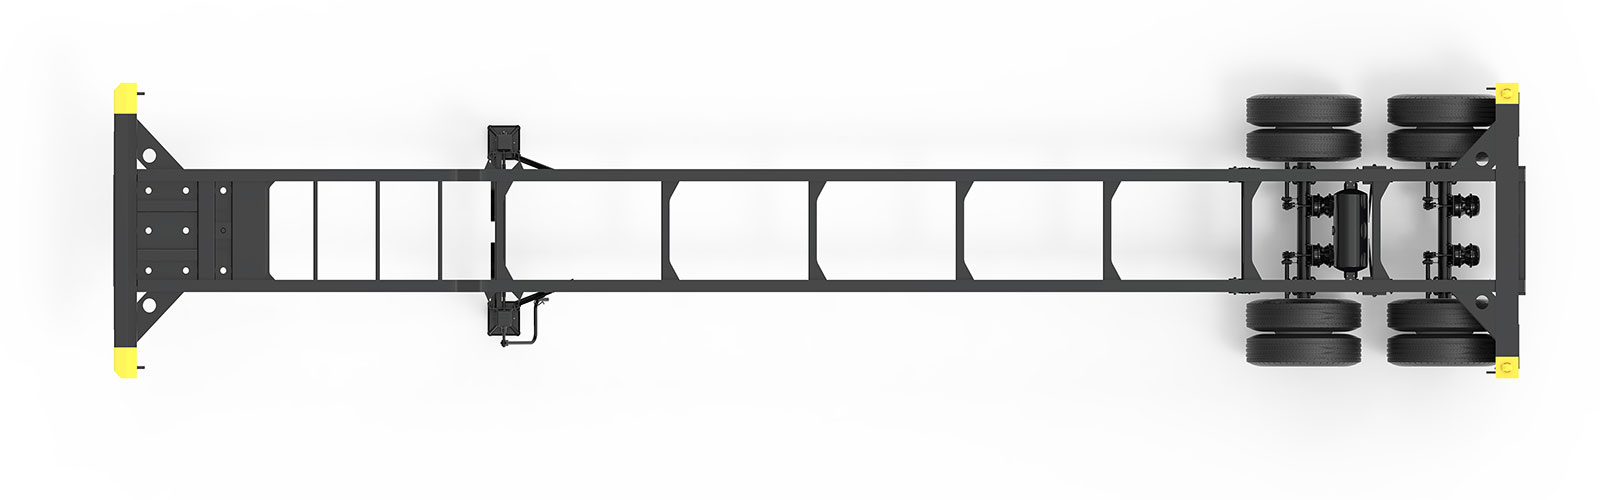 40' Gooseneck Tandem Lightweight Container Chassis Orthographic Top View Final